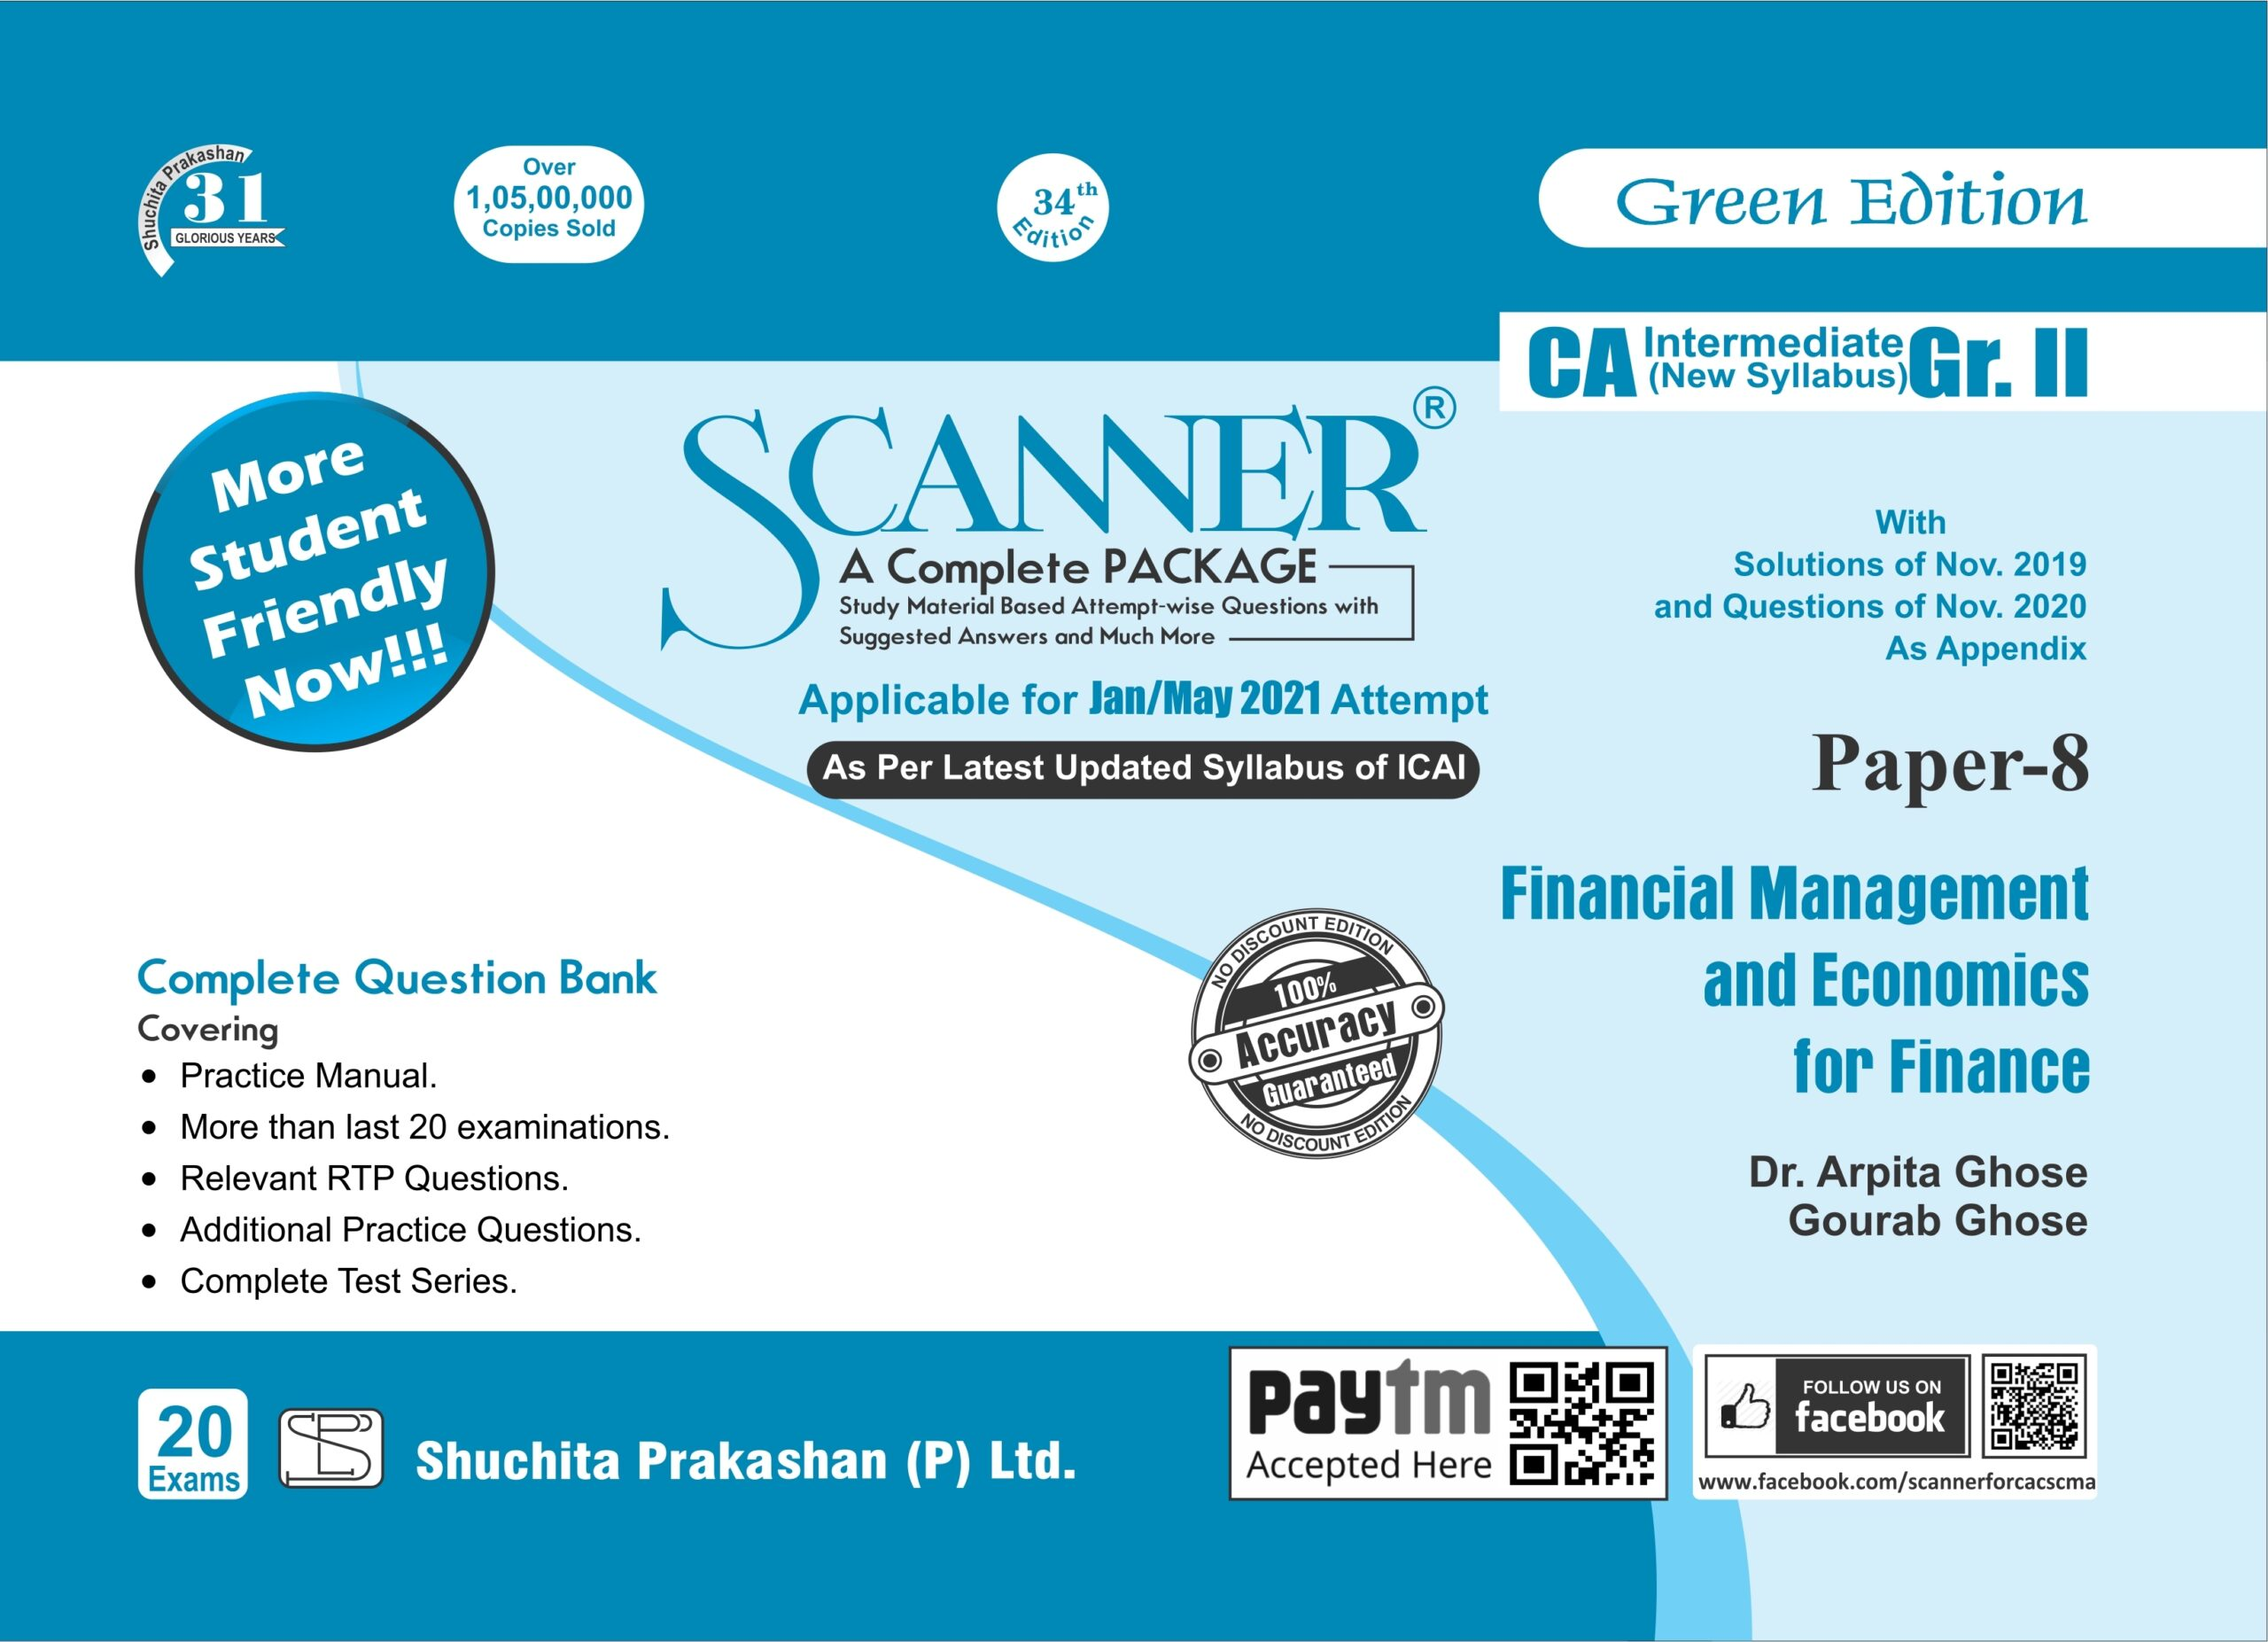 Shuchita CA Inter Group II Paper-8 Solved Scanner Financial Management and Economics for Finance for 2021 TTEMPT